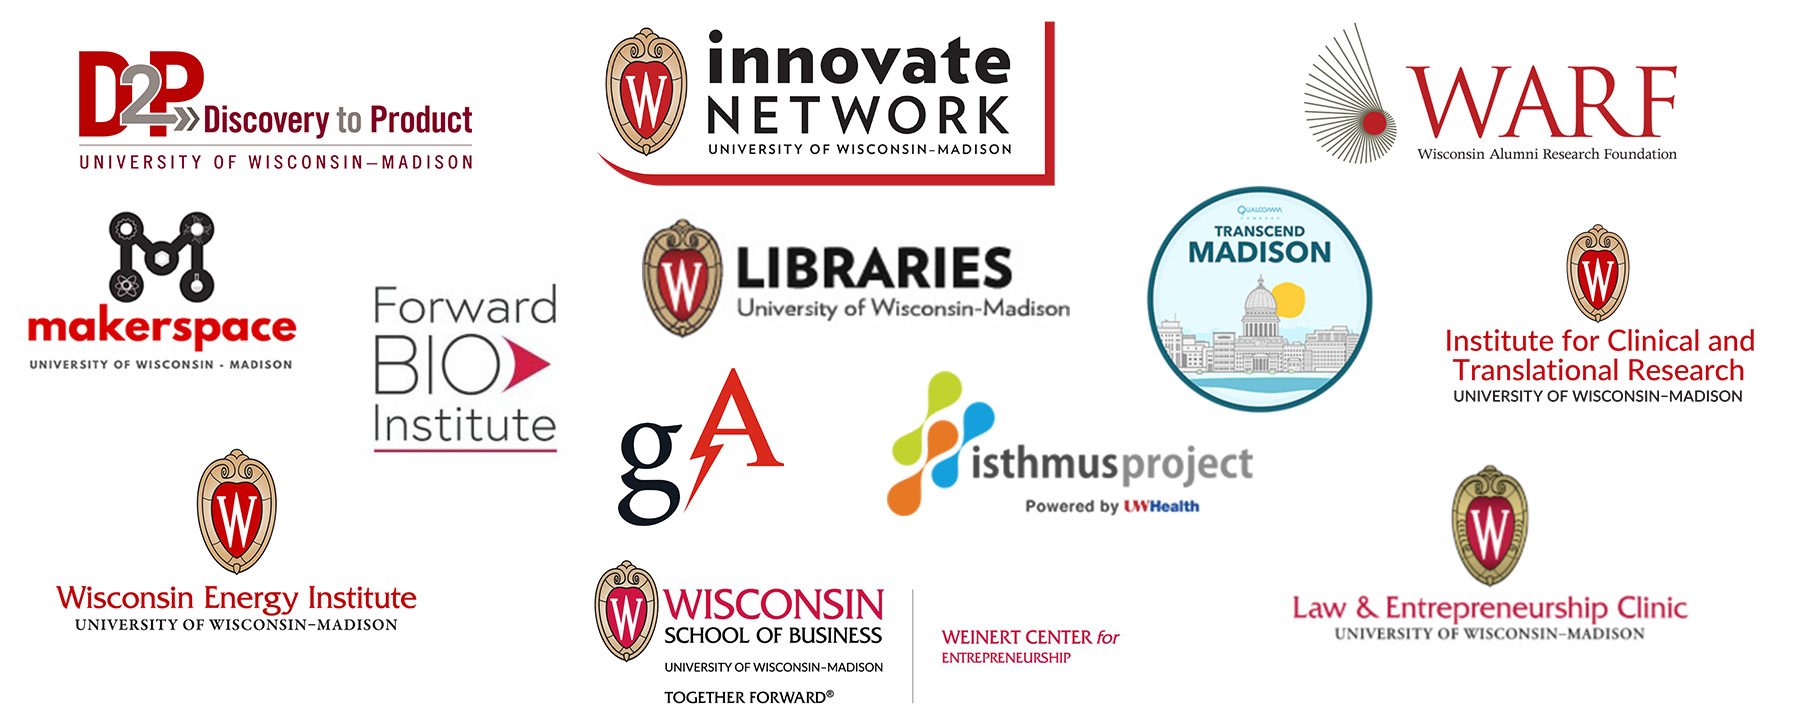 Collage of logos. Innovate Network. Discovery to Product. Makerspace. Wisconsin Energy Institute. Forward Bio Institute. UW-Madison Libraries. GA. Wisconsin School of Business Weinert Center for Entrepreneurship. Isthmus Project. Transcend Madison. Wisconsin Alumni Research Foundation. Institute for Clinical and Translational Research. Law & Entrepreneurship Clinic.